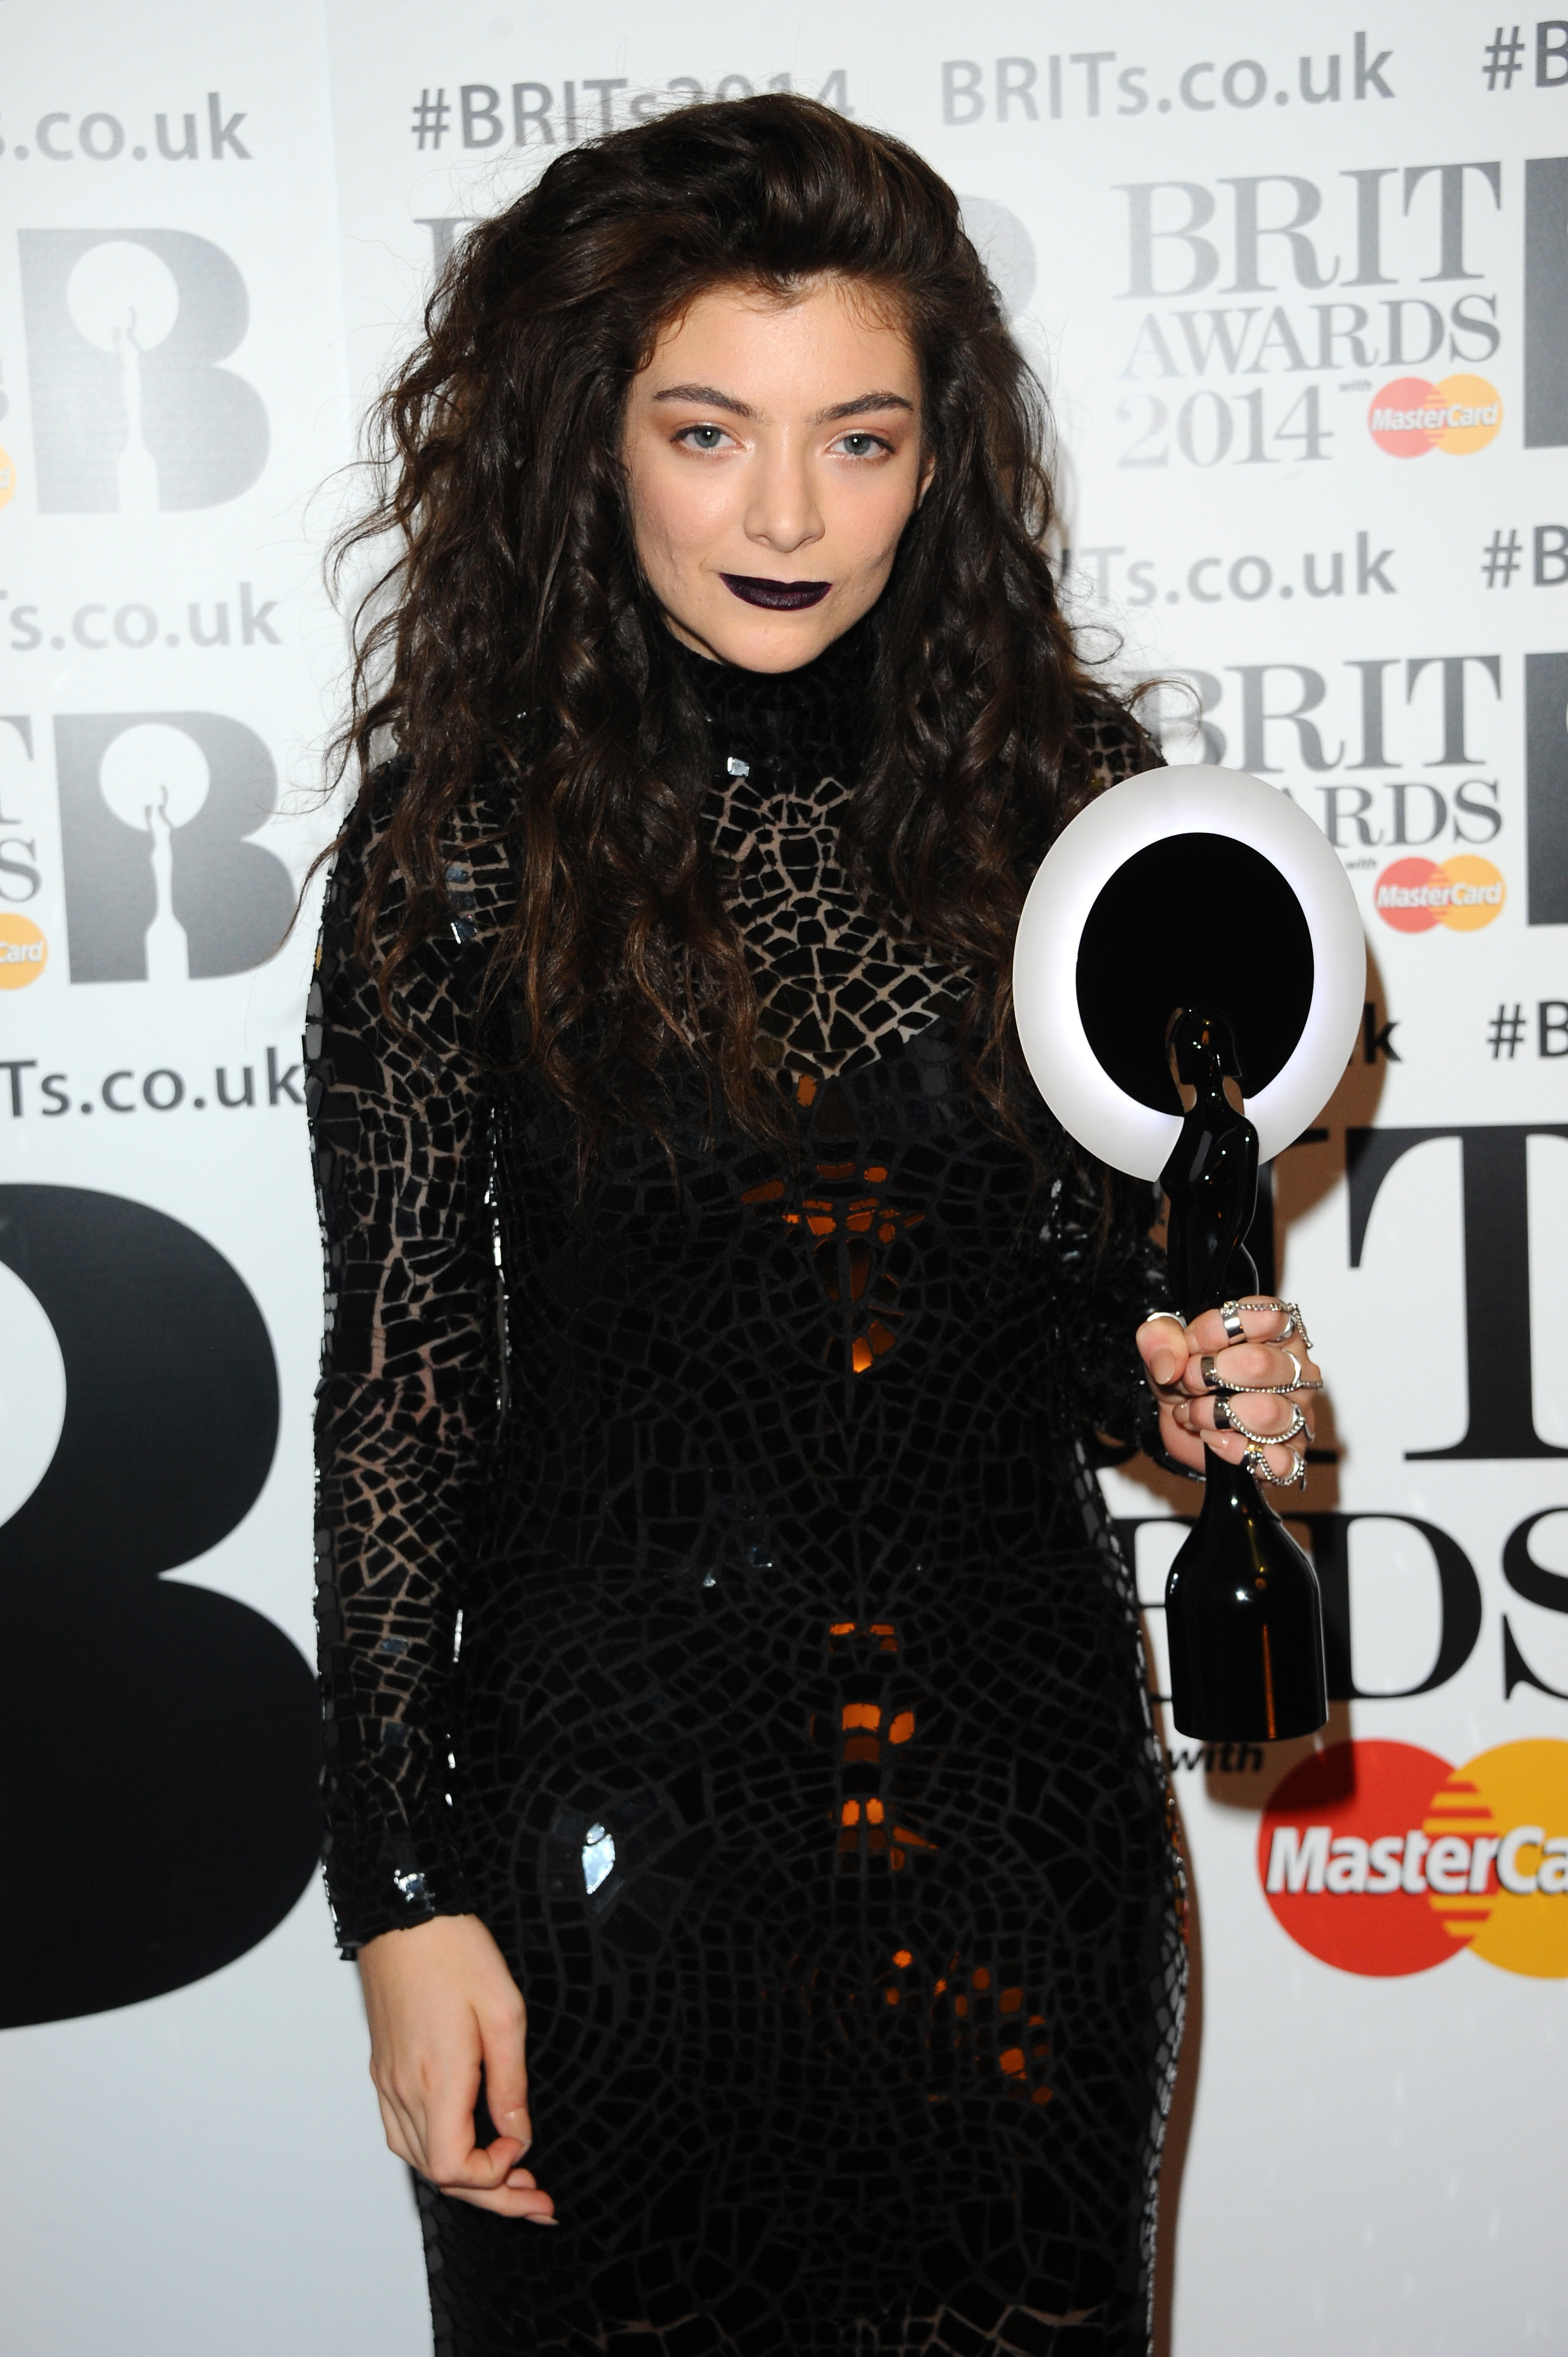 Get The Look: Lorde's Makeup At The BRIT Awards 2014 ...